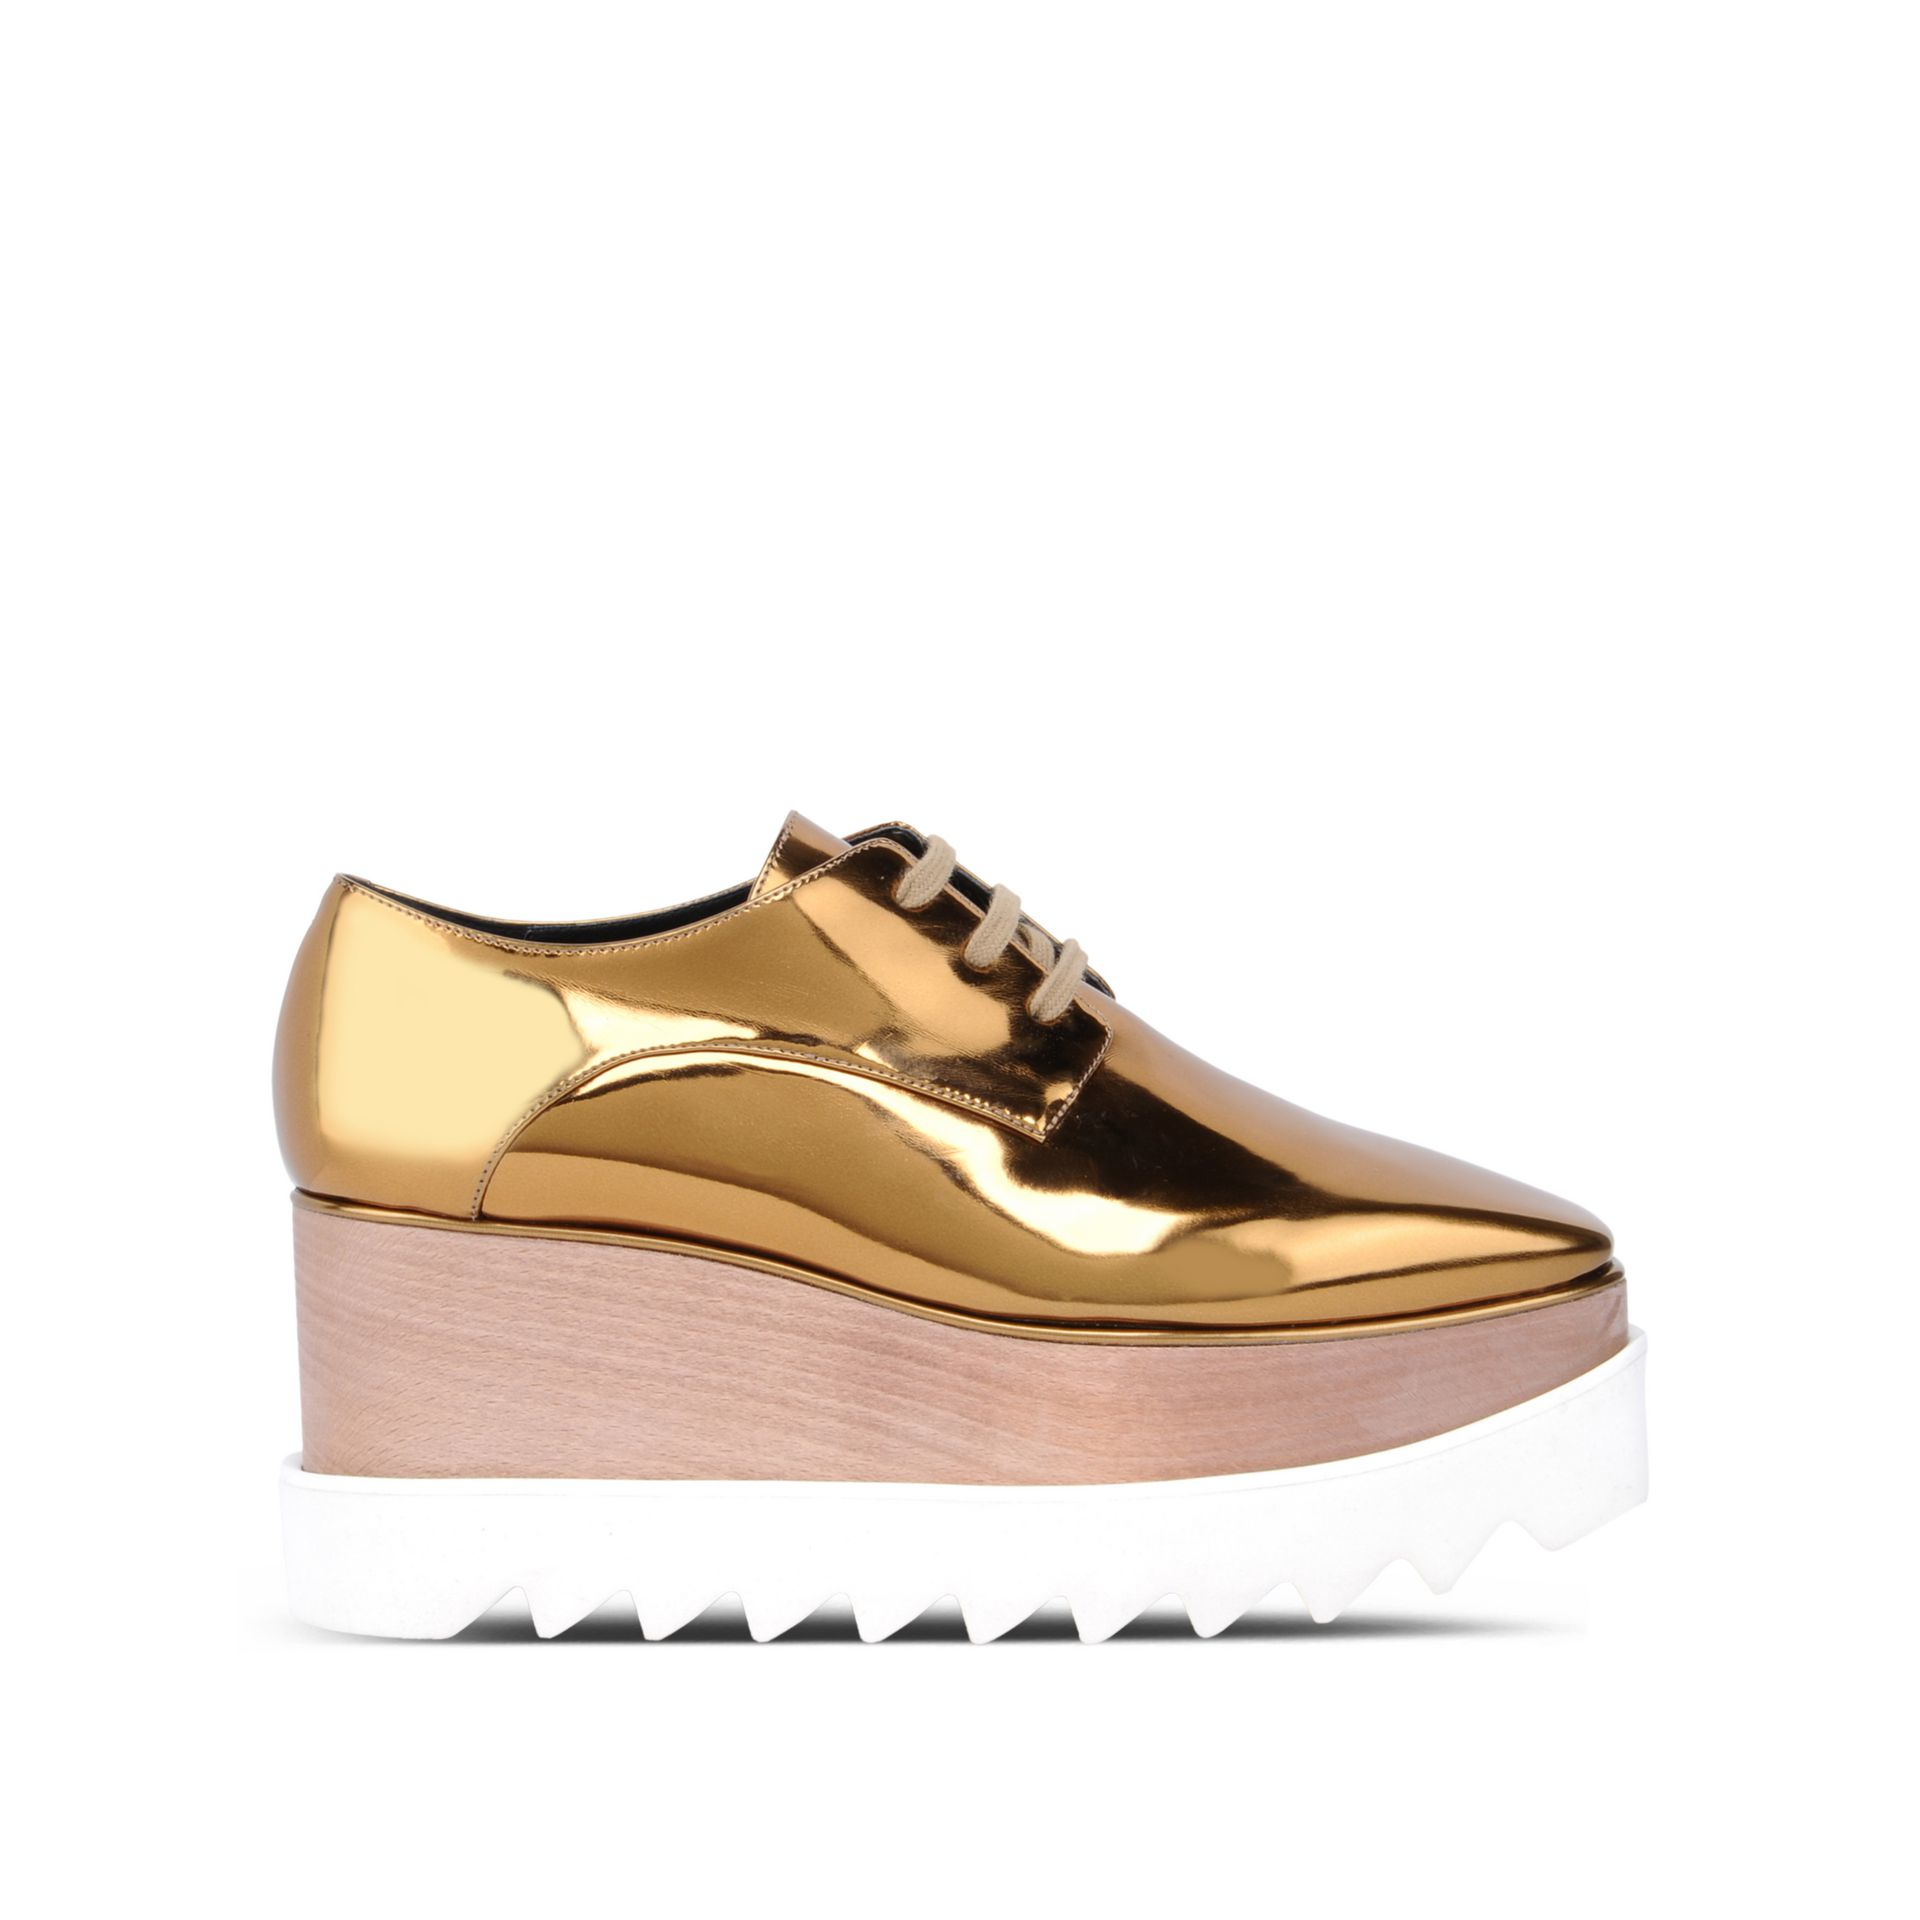 Stella Mccartney Patent Leather Shoes